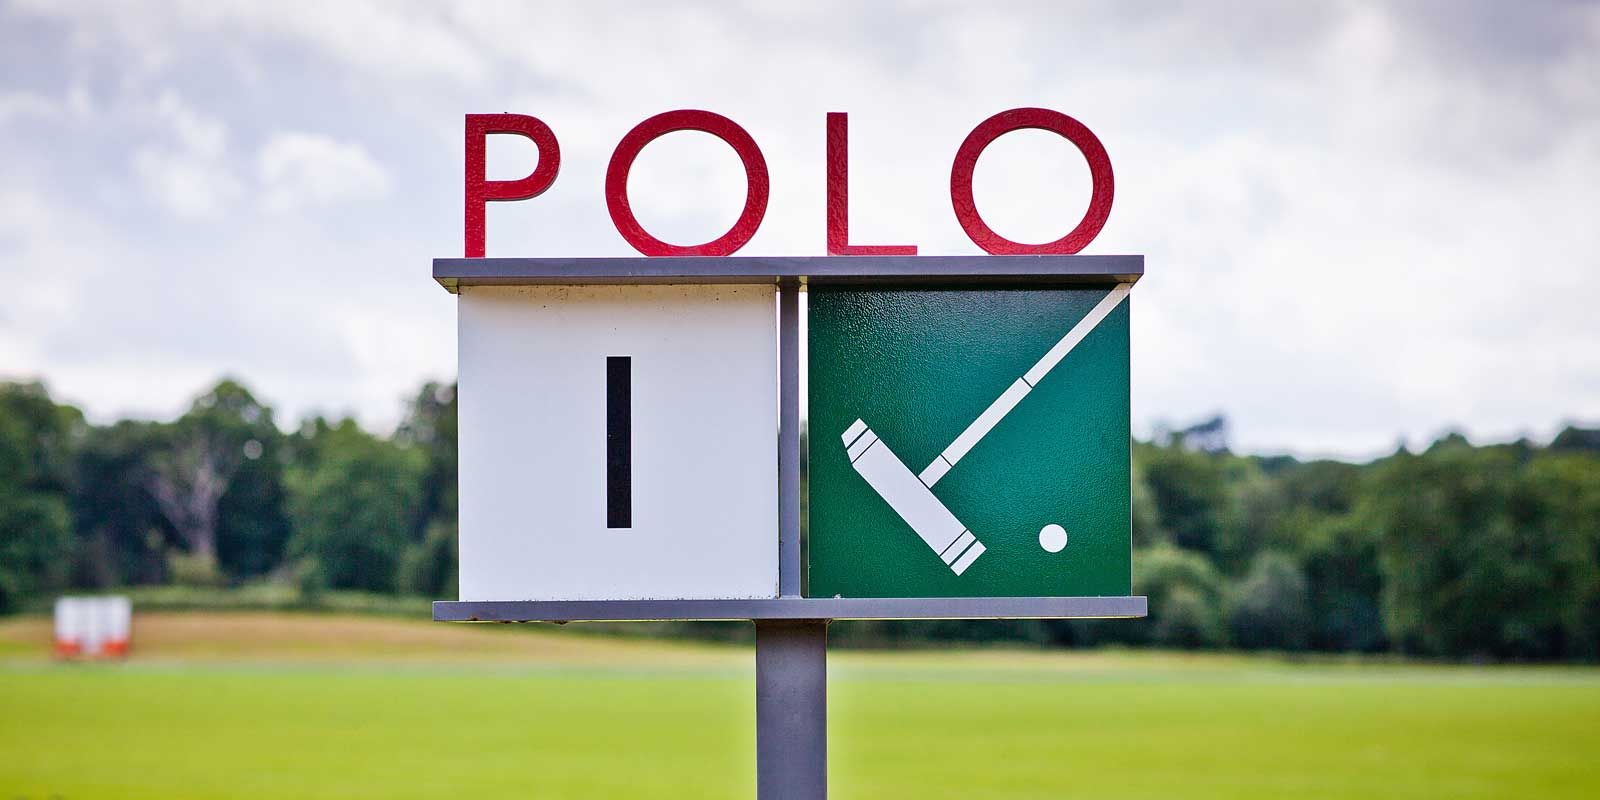 Guards Polo at Coworth Park